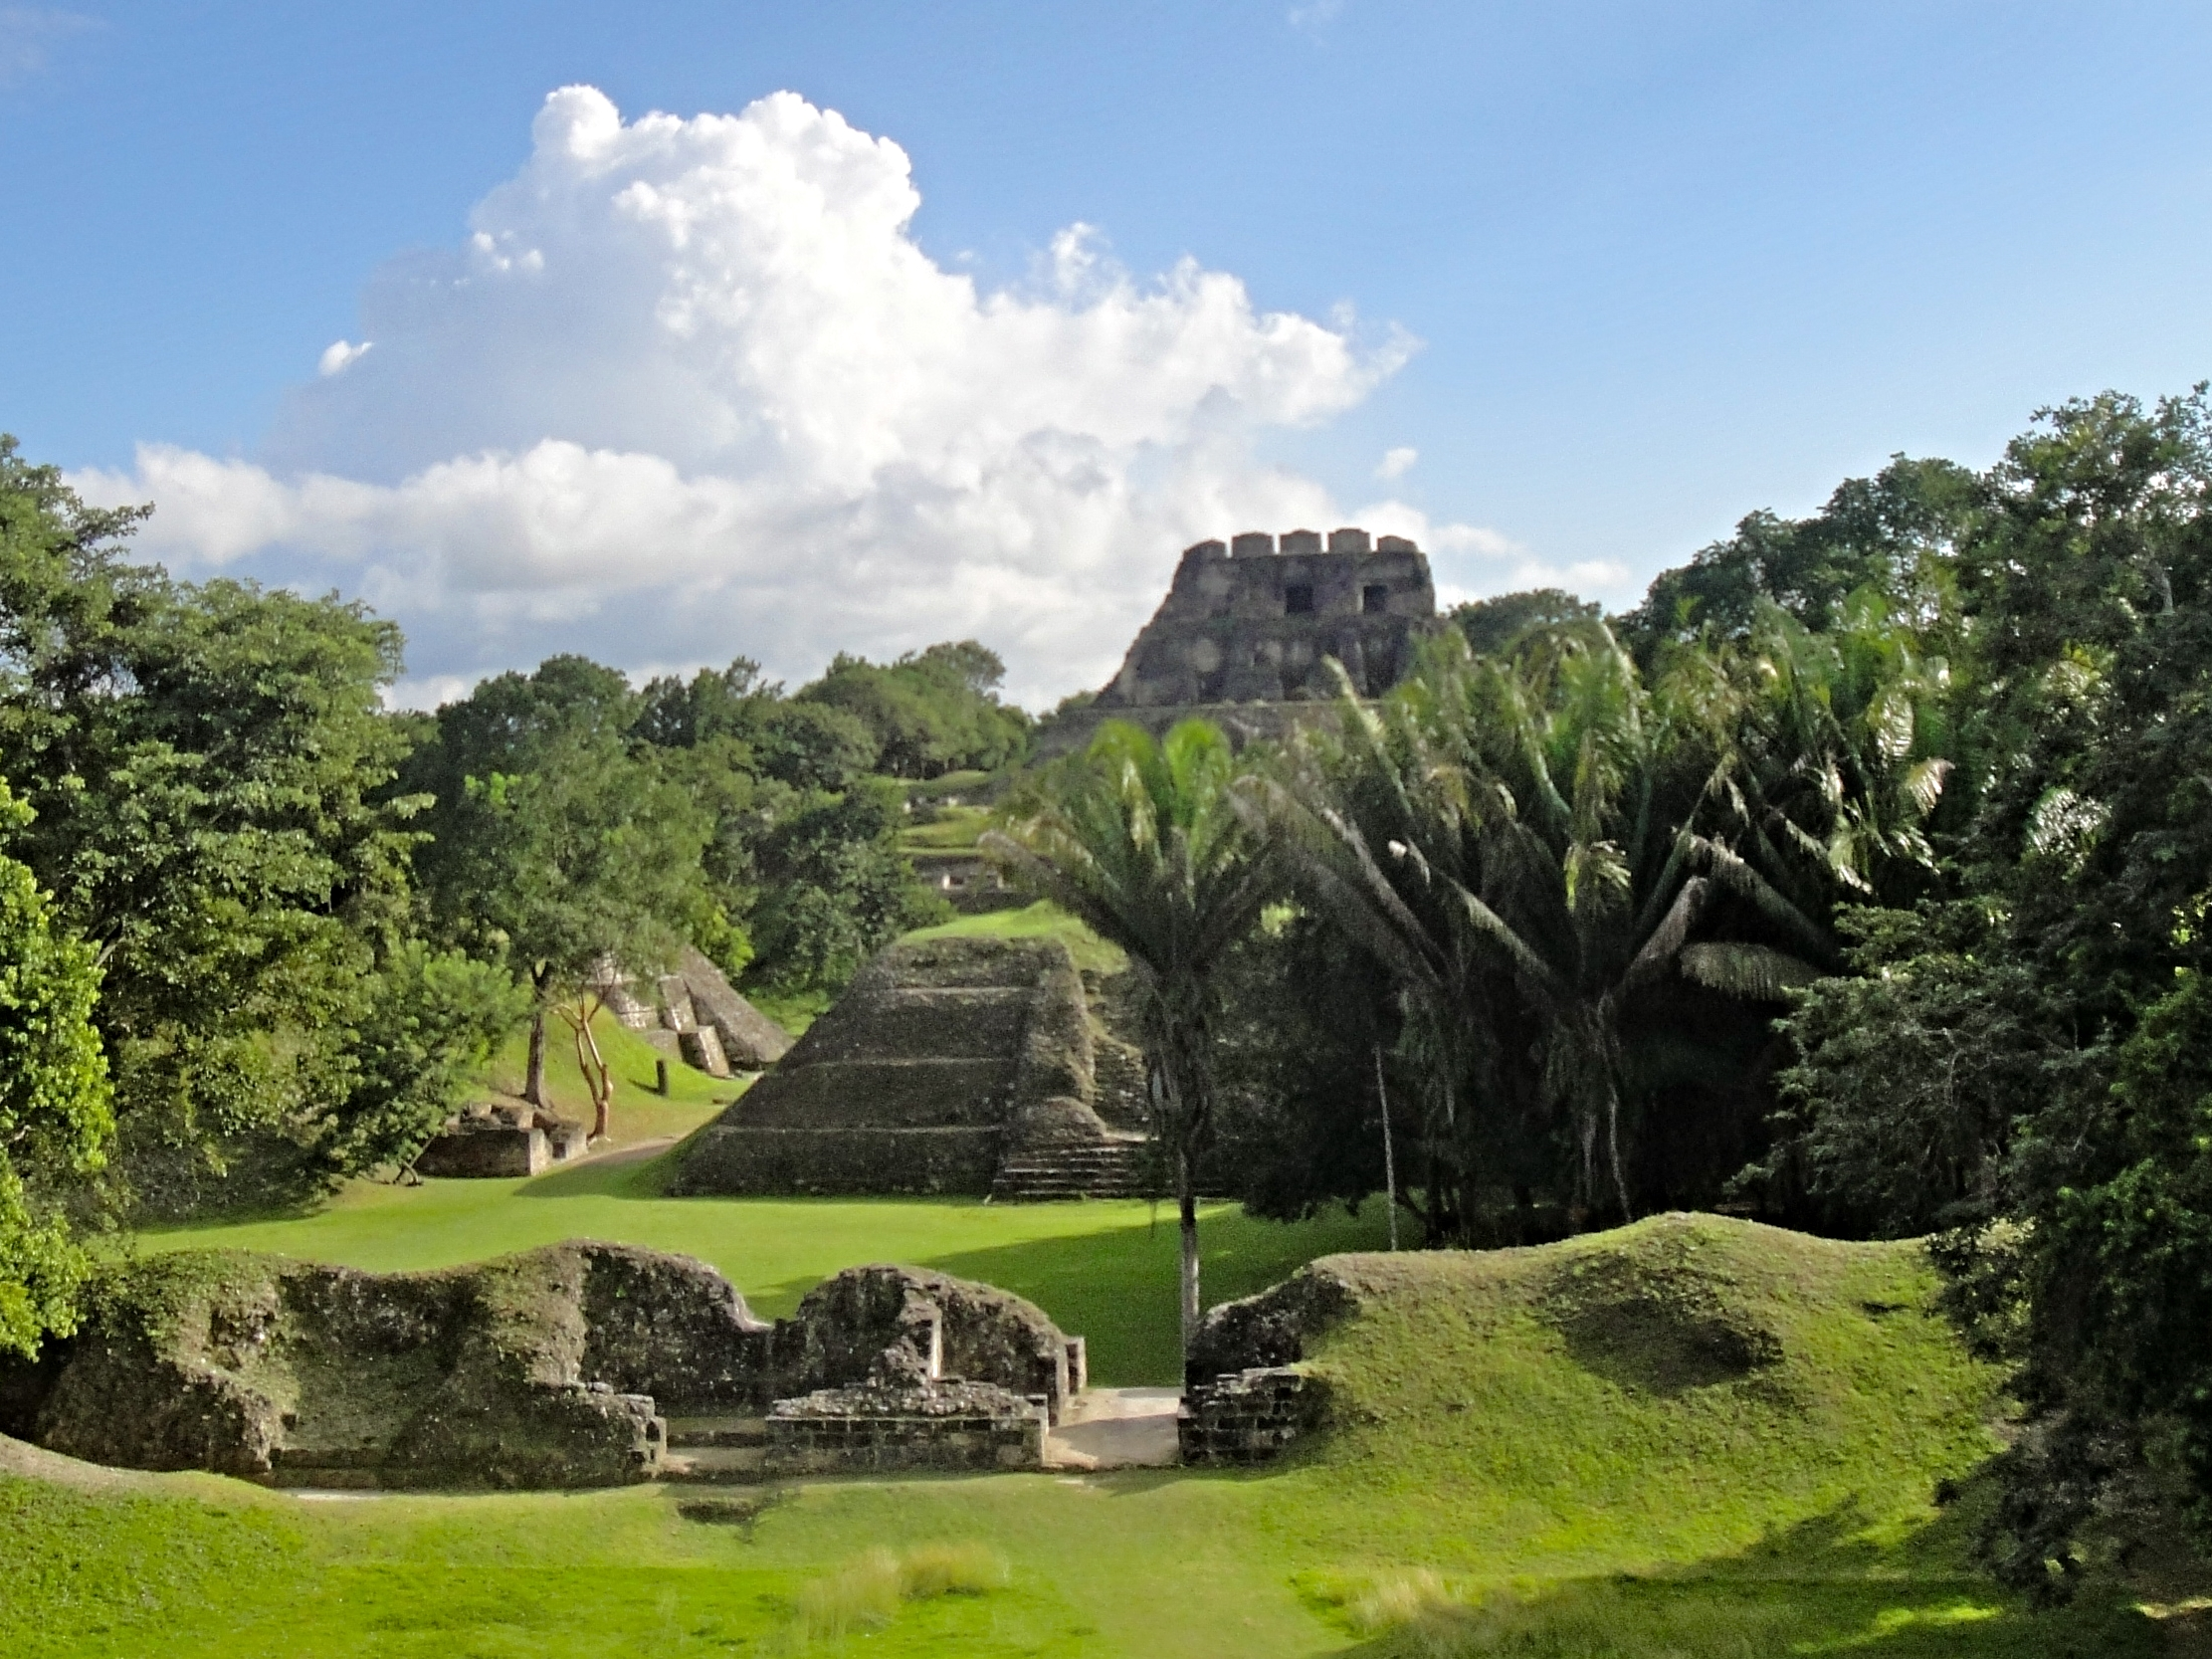 Xunantunich is one of Belize's loveliest and most accessible Maya Sites